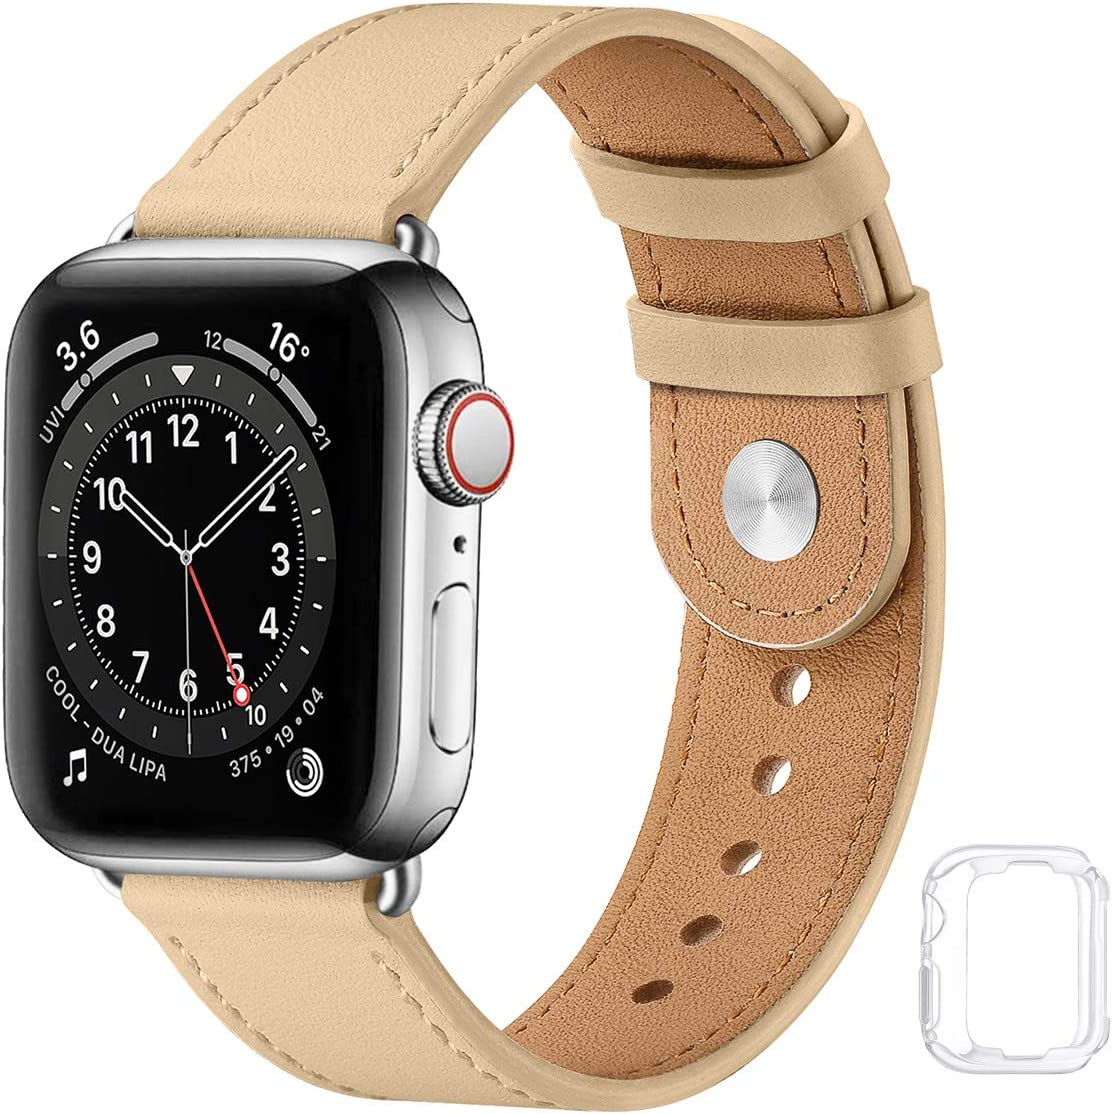 Soft Leather Watch Bands Compatible with Apple Watch Band 38mm 40mm 42mm 44mm, Special Watch Band Replacement Strap for Women Men for iWatch SE Series 6 5 4 3 2 1 (Light tan with Silver, 42MM/44MM)